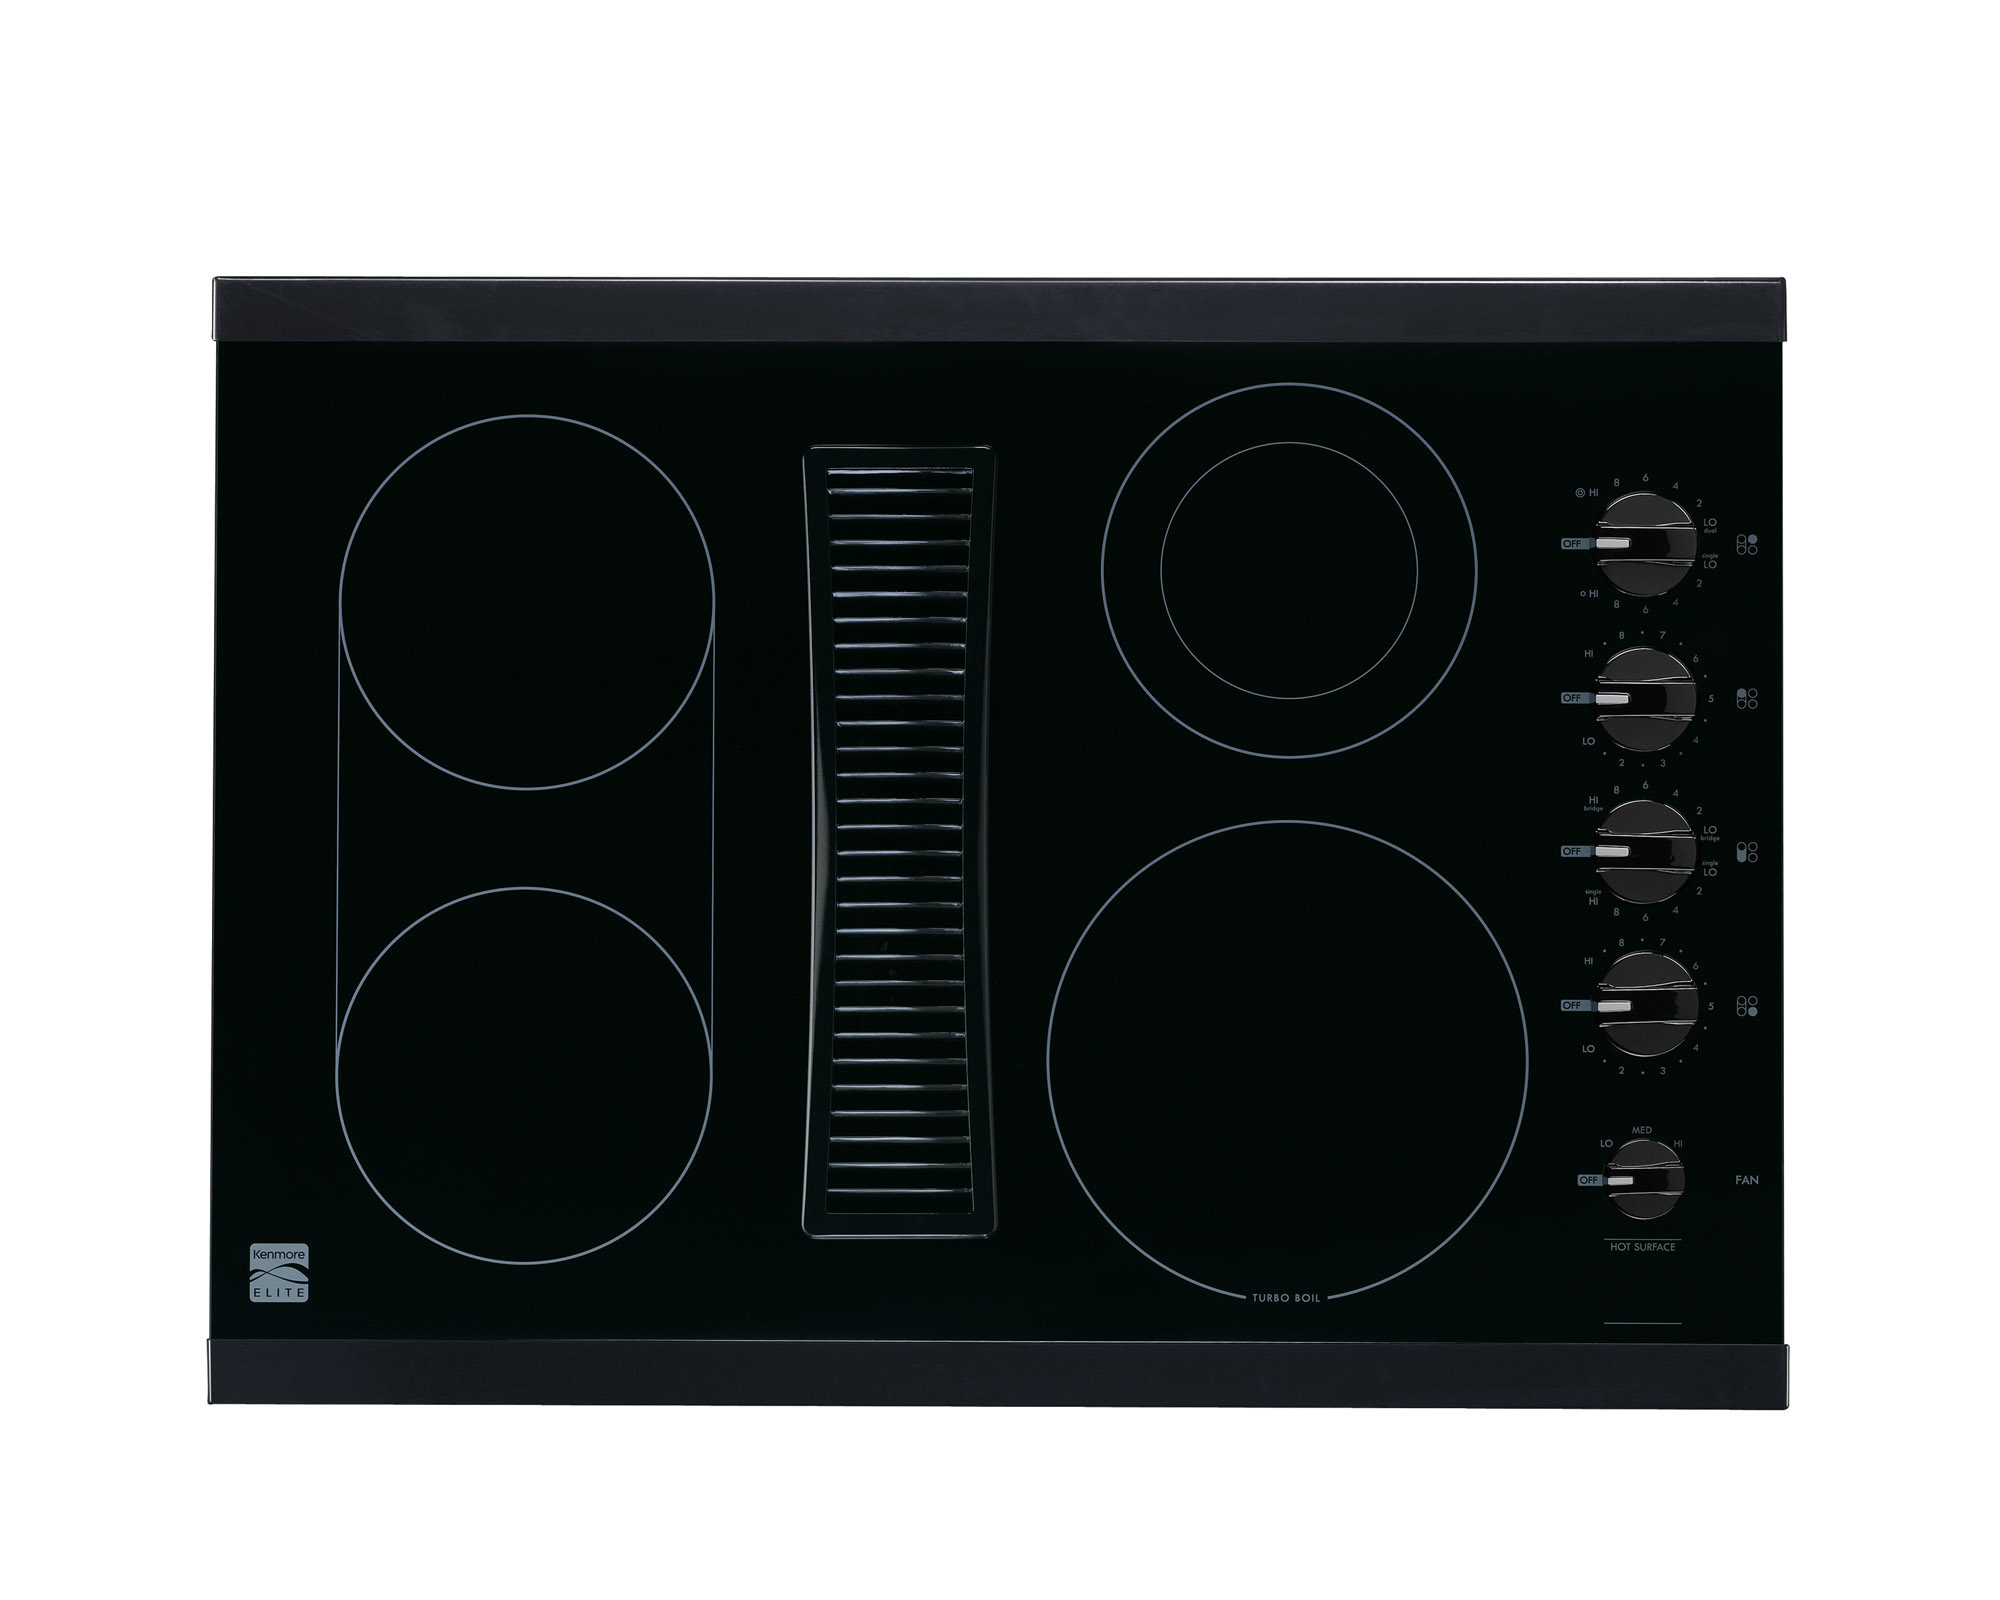 0012505562204 - 44119 30 DOWNDRAFT ELECTRIC COOKTOP